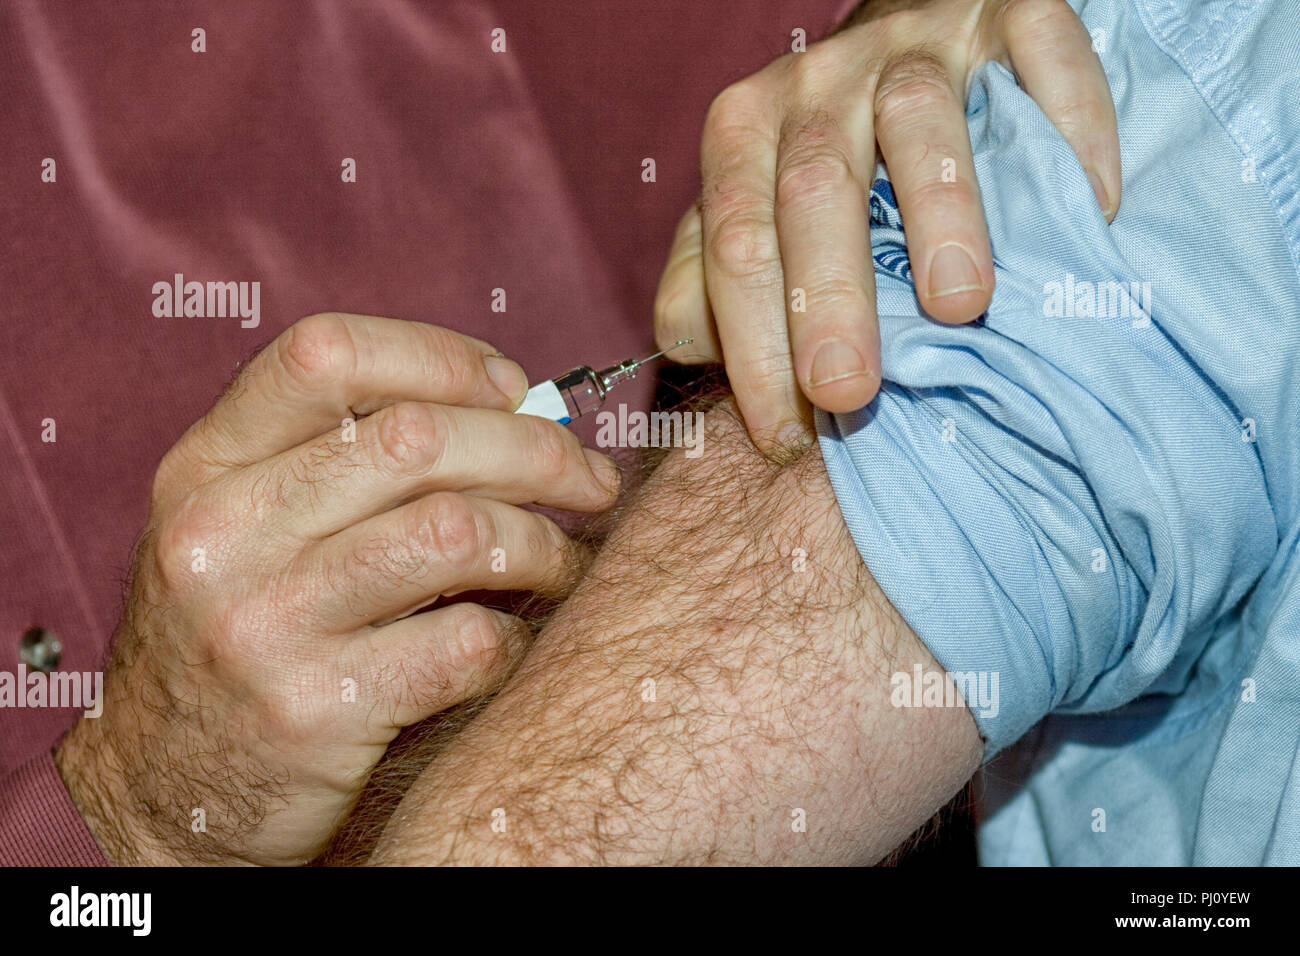 Doctor puts syringe in male hairy arm - Stock Image